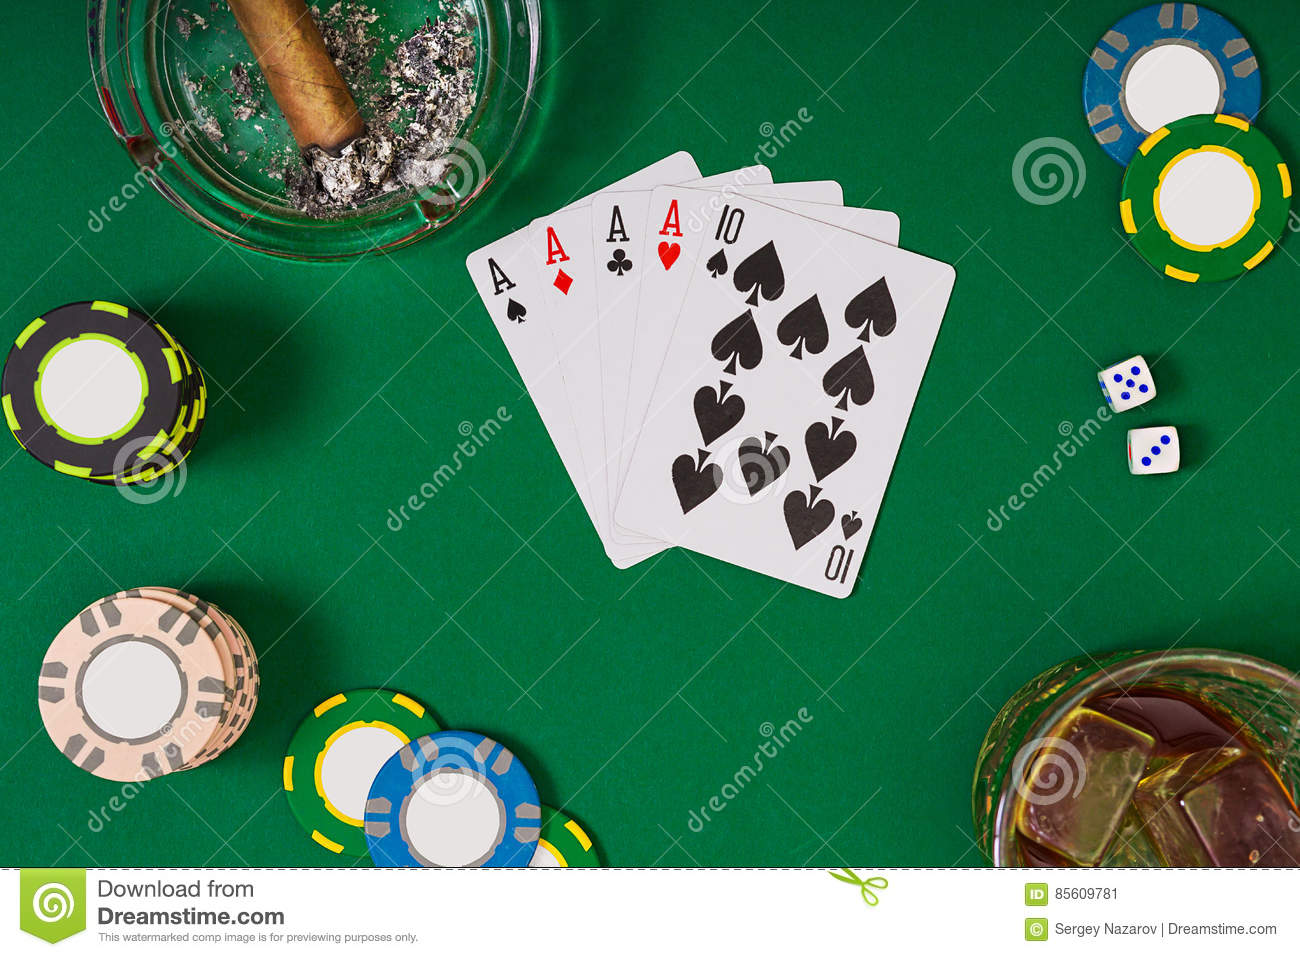 Royalty-Free Stock Photo & Set To Playing Poker With Cards And Chips On Green Table Top View ...